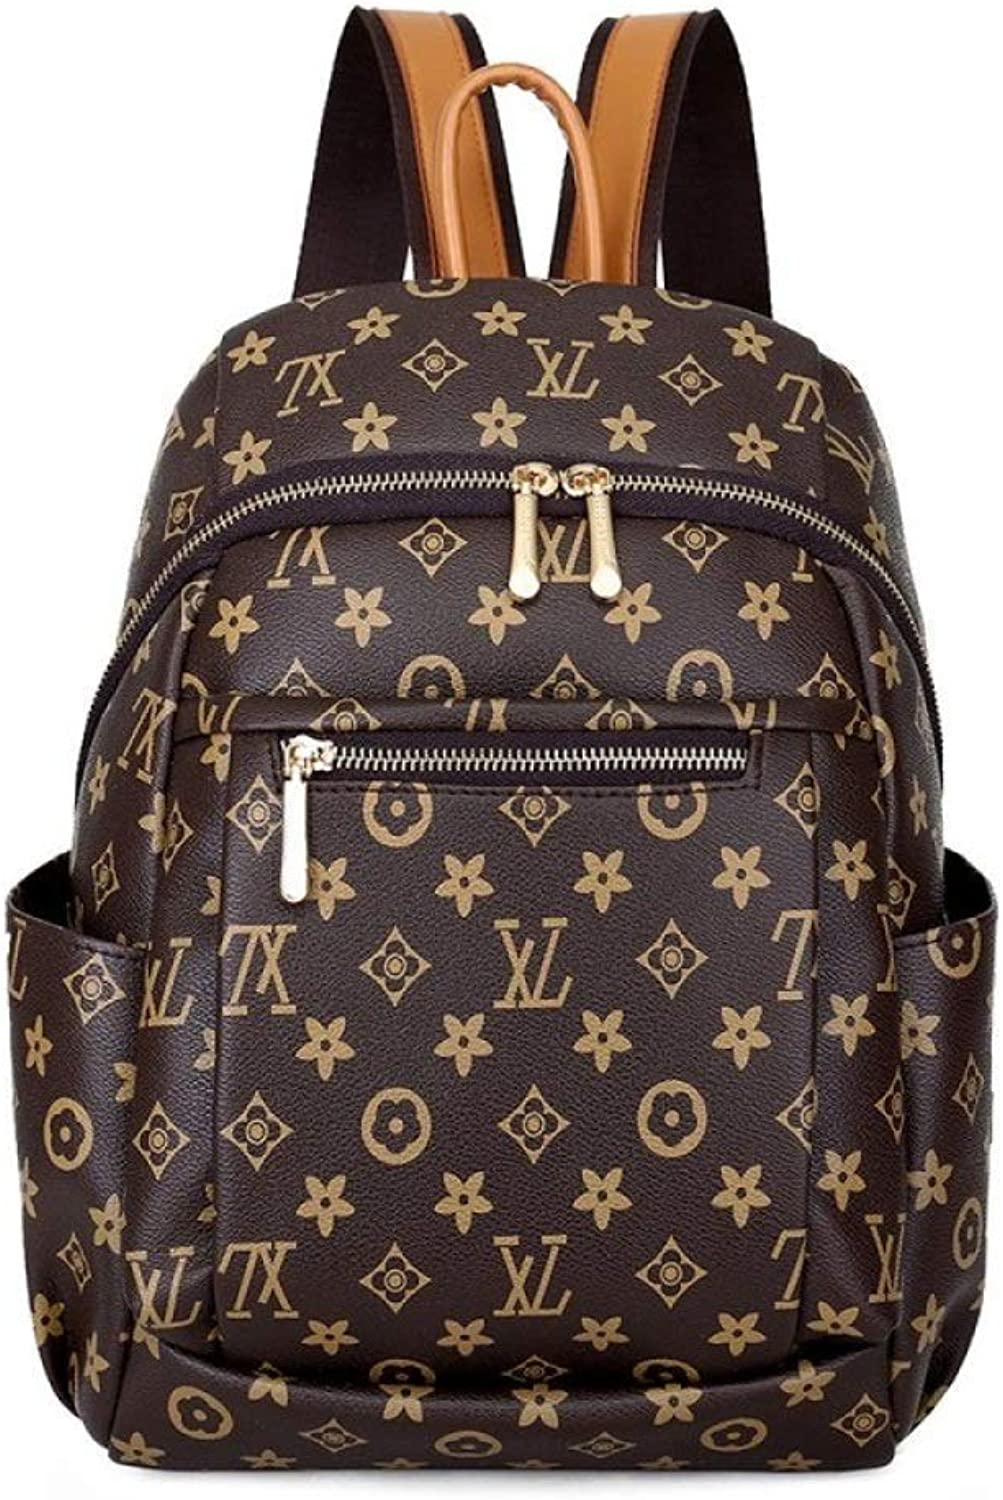 Backpack female trend large capacity printing letter pack leisure travel bag student bag pu Mummy bag 26  15  34cm (color   Brown, Size   26  34  15CM)